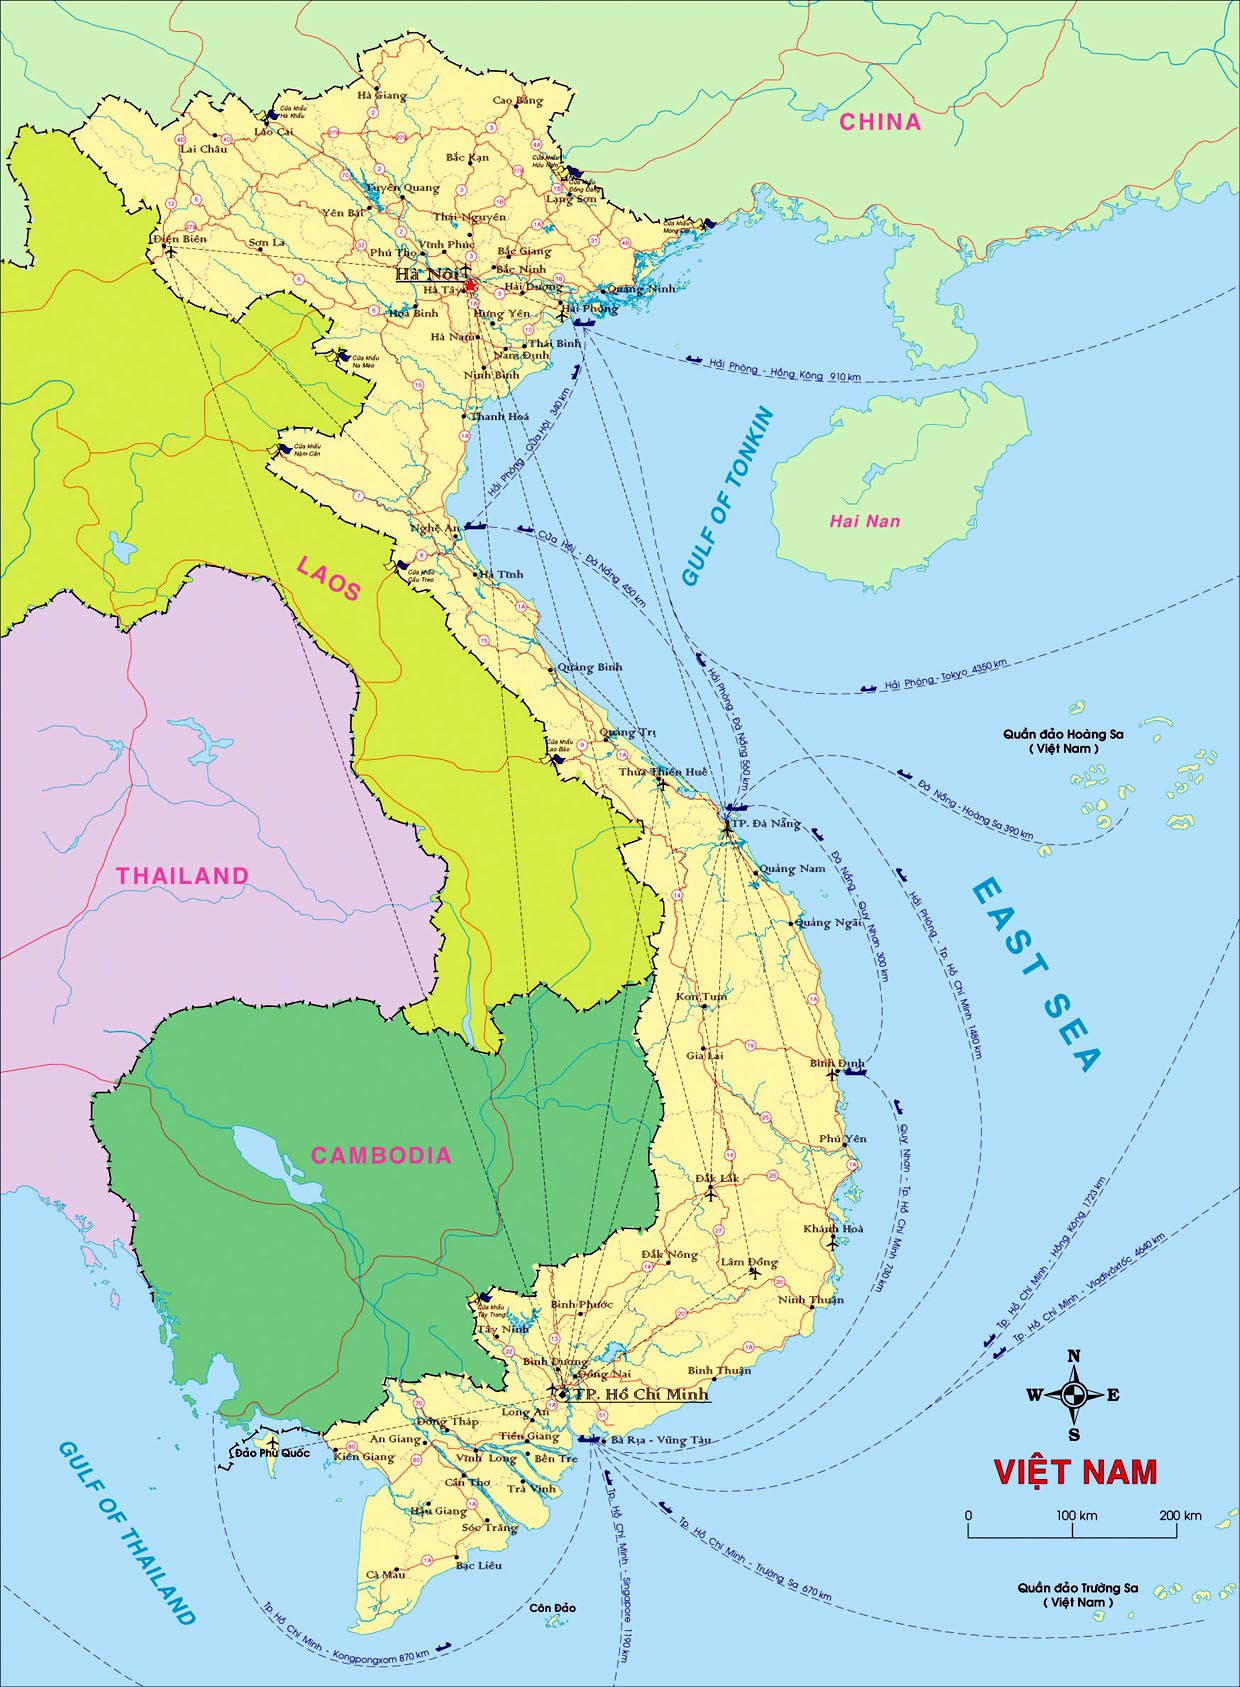 Vietnam Maps | Printable Maps of Vietnam for Download